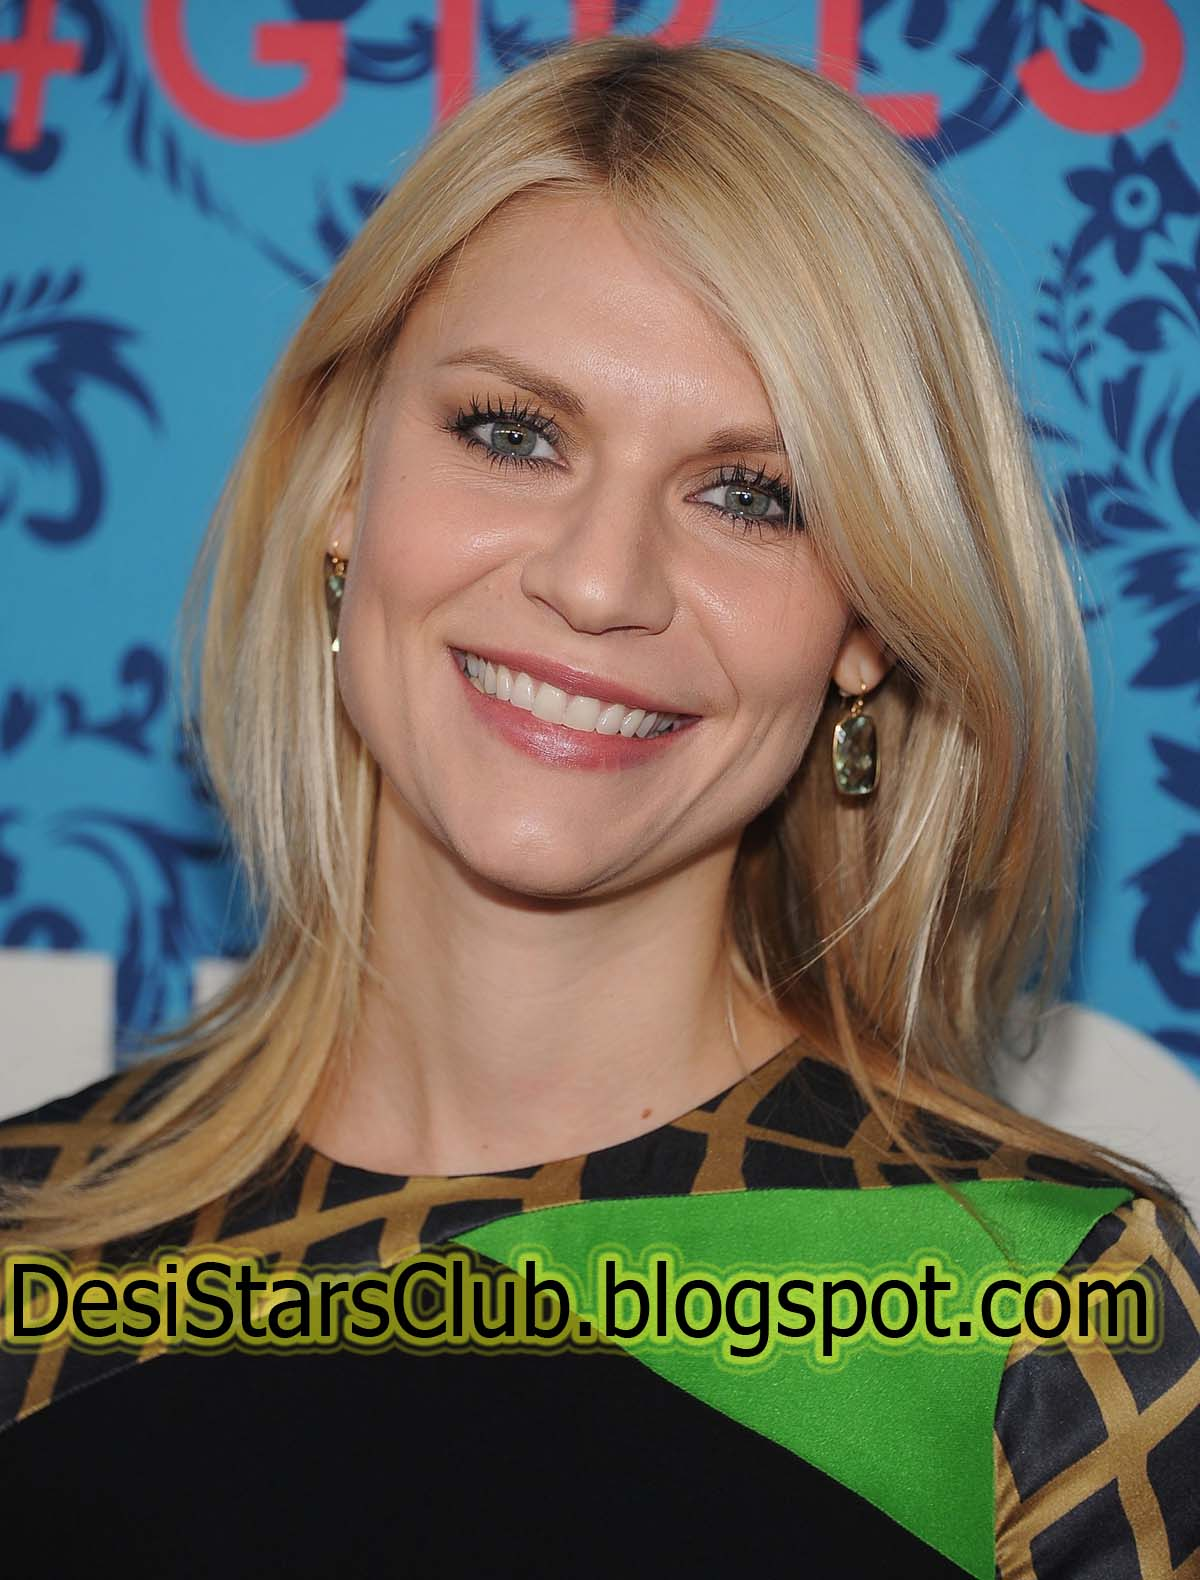 Claire Danes At The Premiere Of HBO's 'Girls' In New York